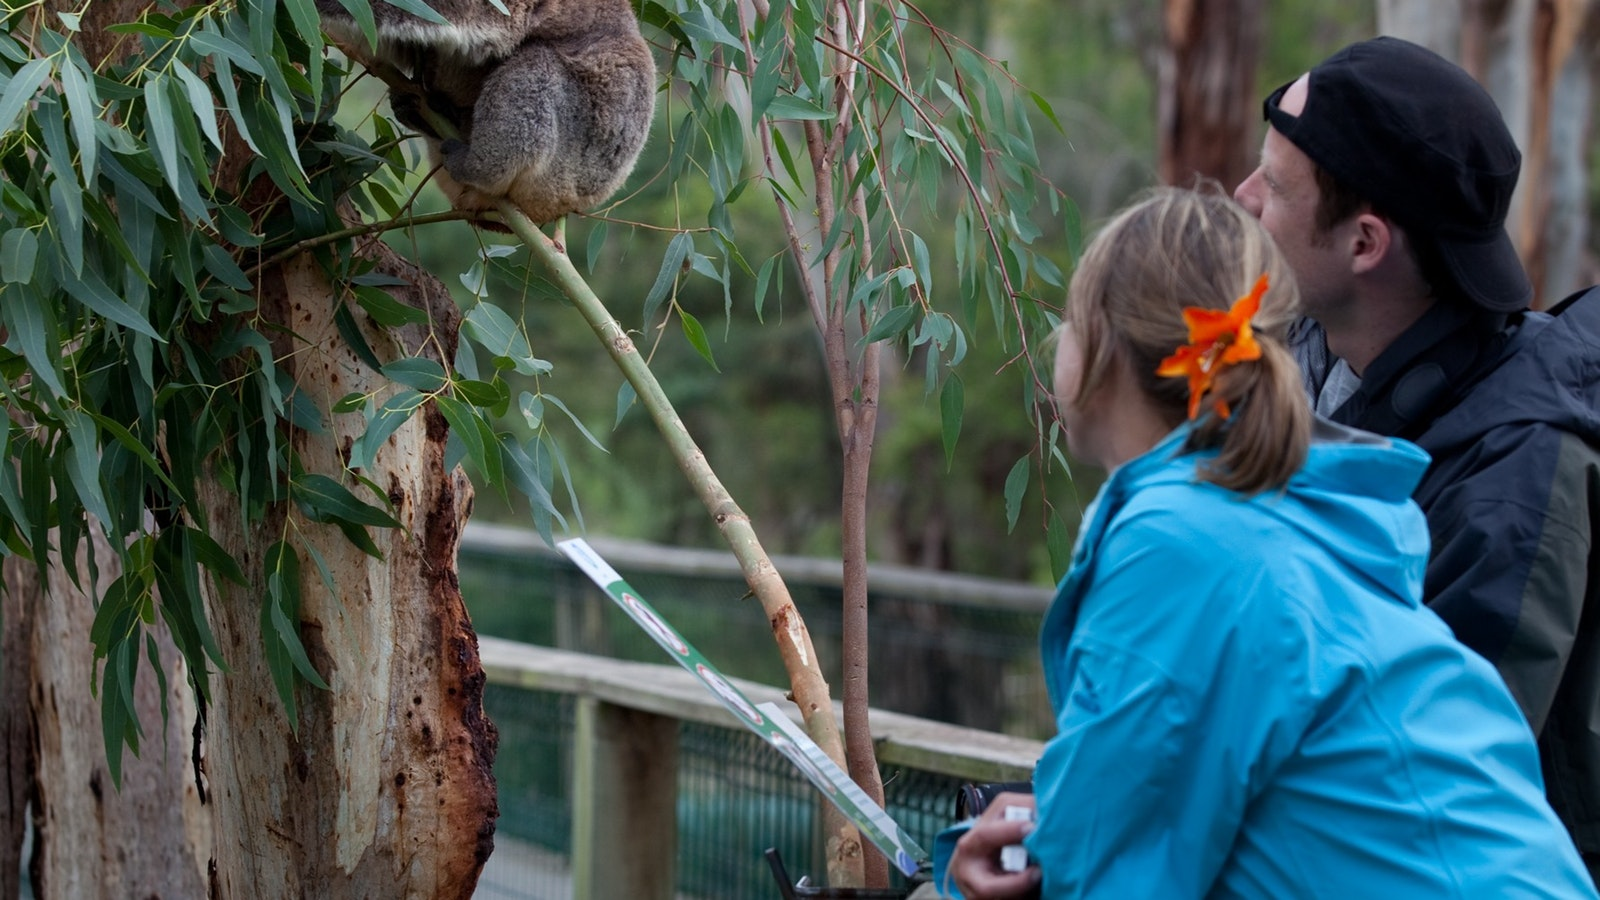 Viewing Koalas at the Koala Conservation Centre